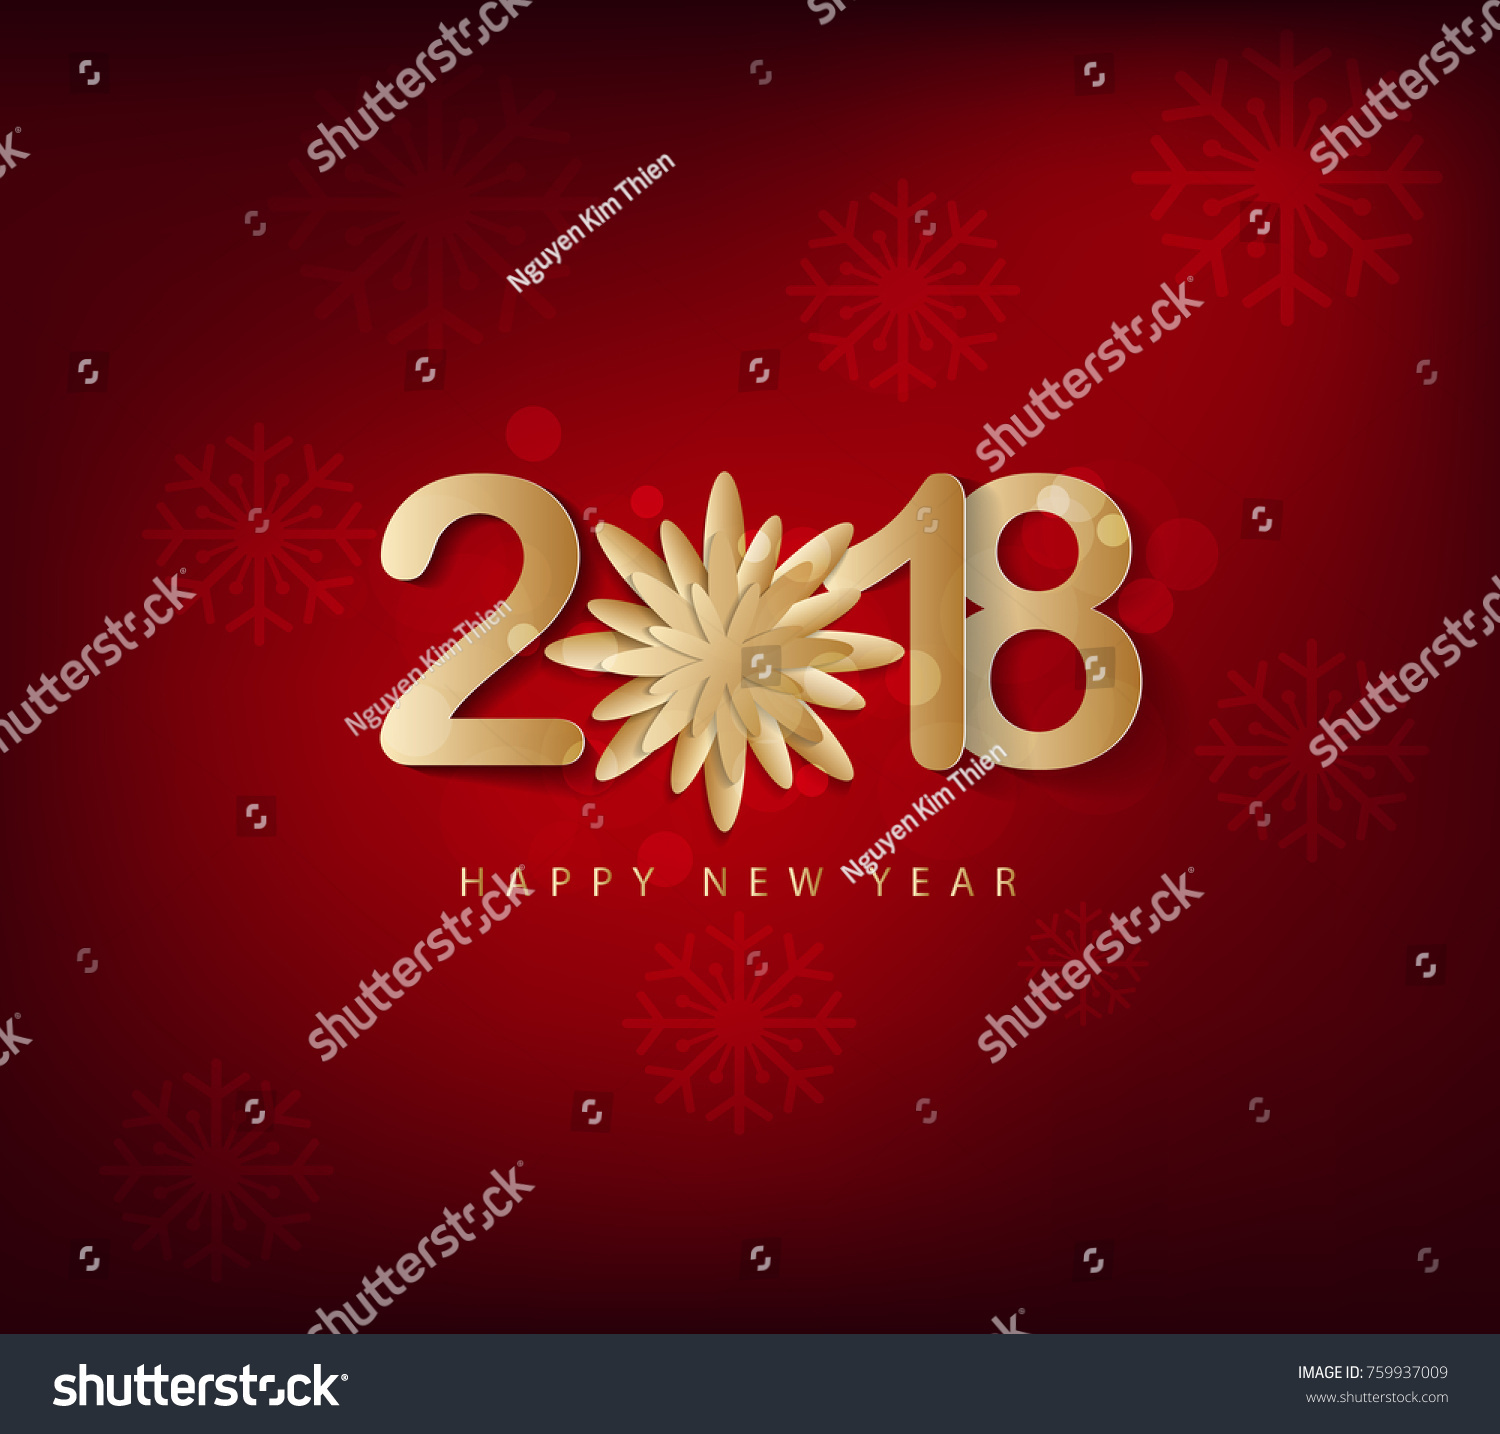 Happy new year 2018 greeting card stock illustration 759937009 happy new year 2018 greeting card and merry christmas chinese new year of the dog m4hsunfo